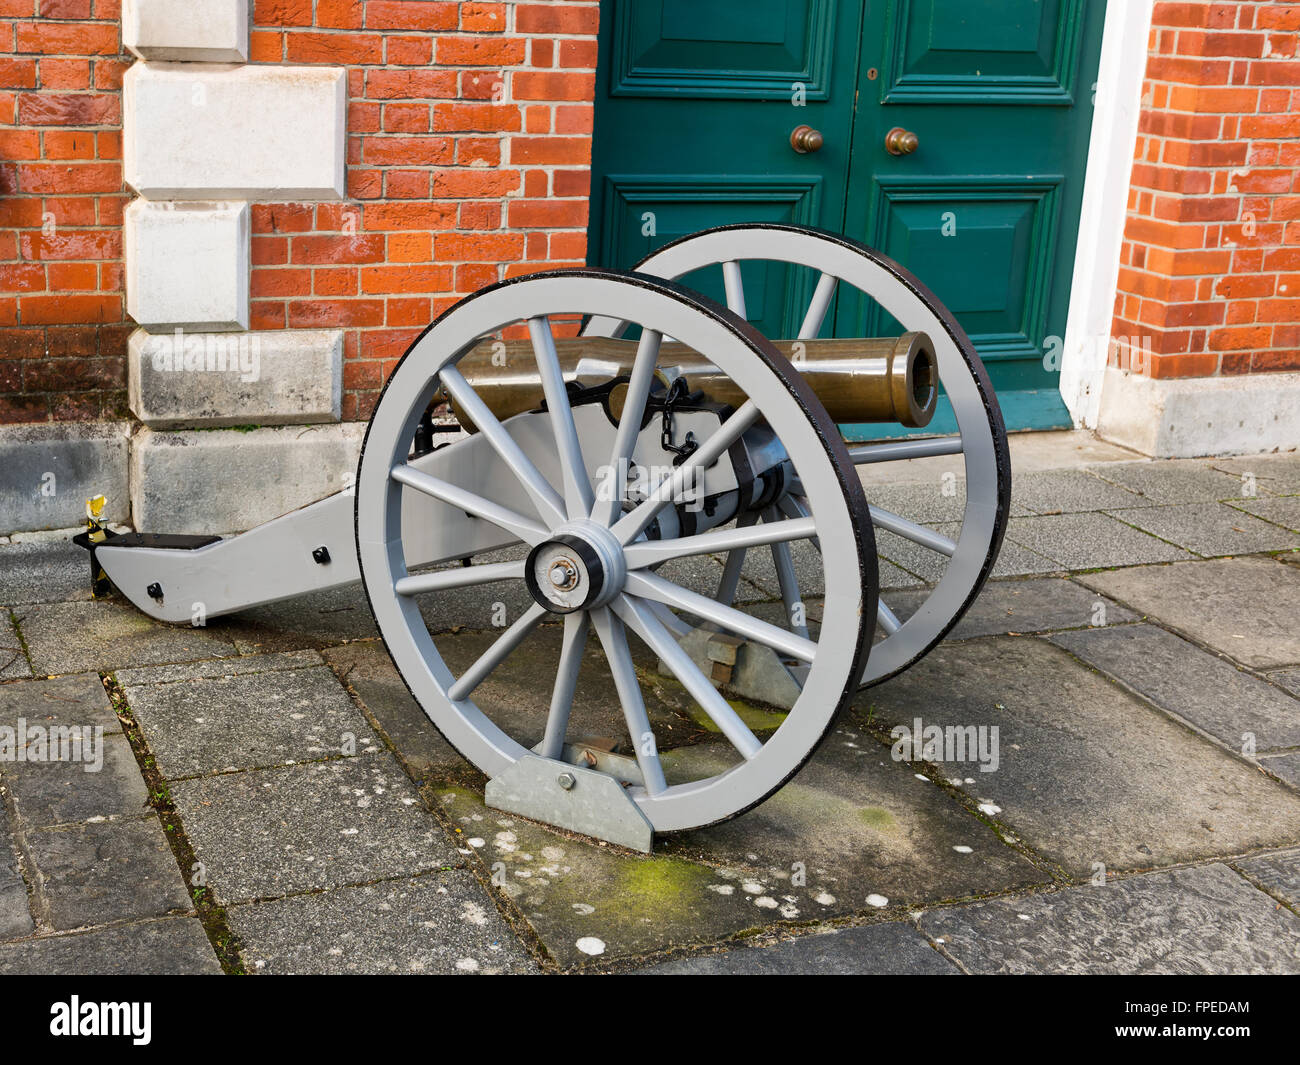 Single historic antique cannon on wheels locked to the ground outdoors as a display of warfare - Stock Image